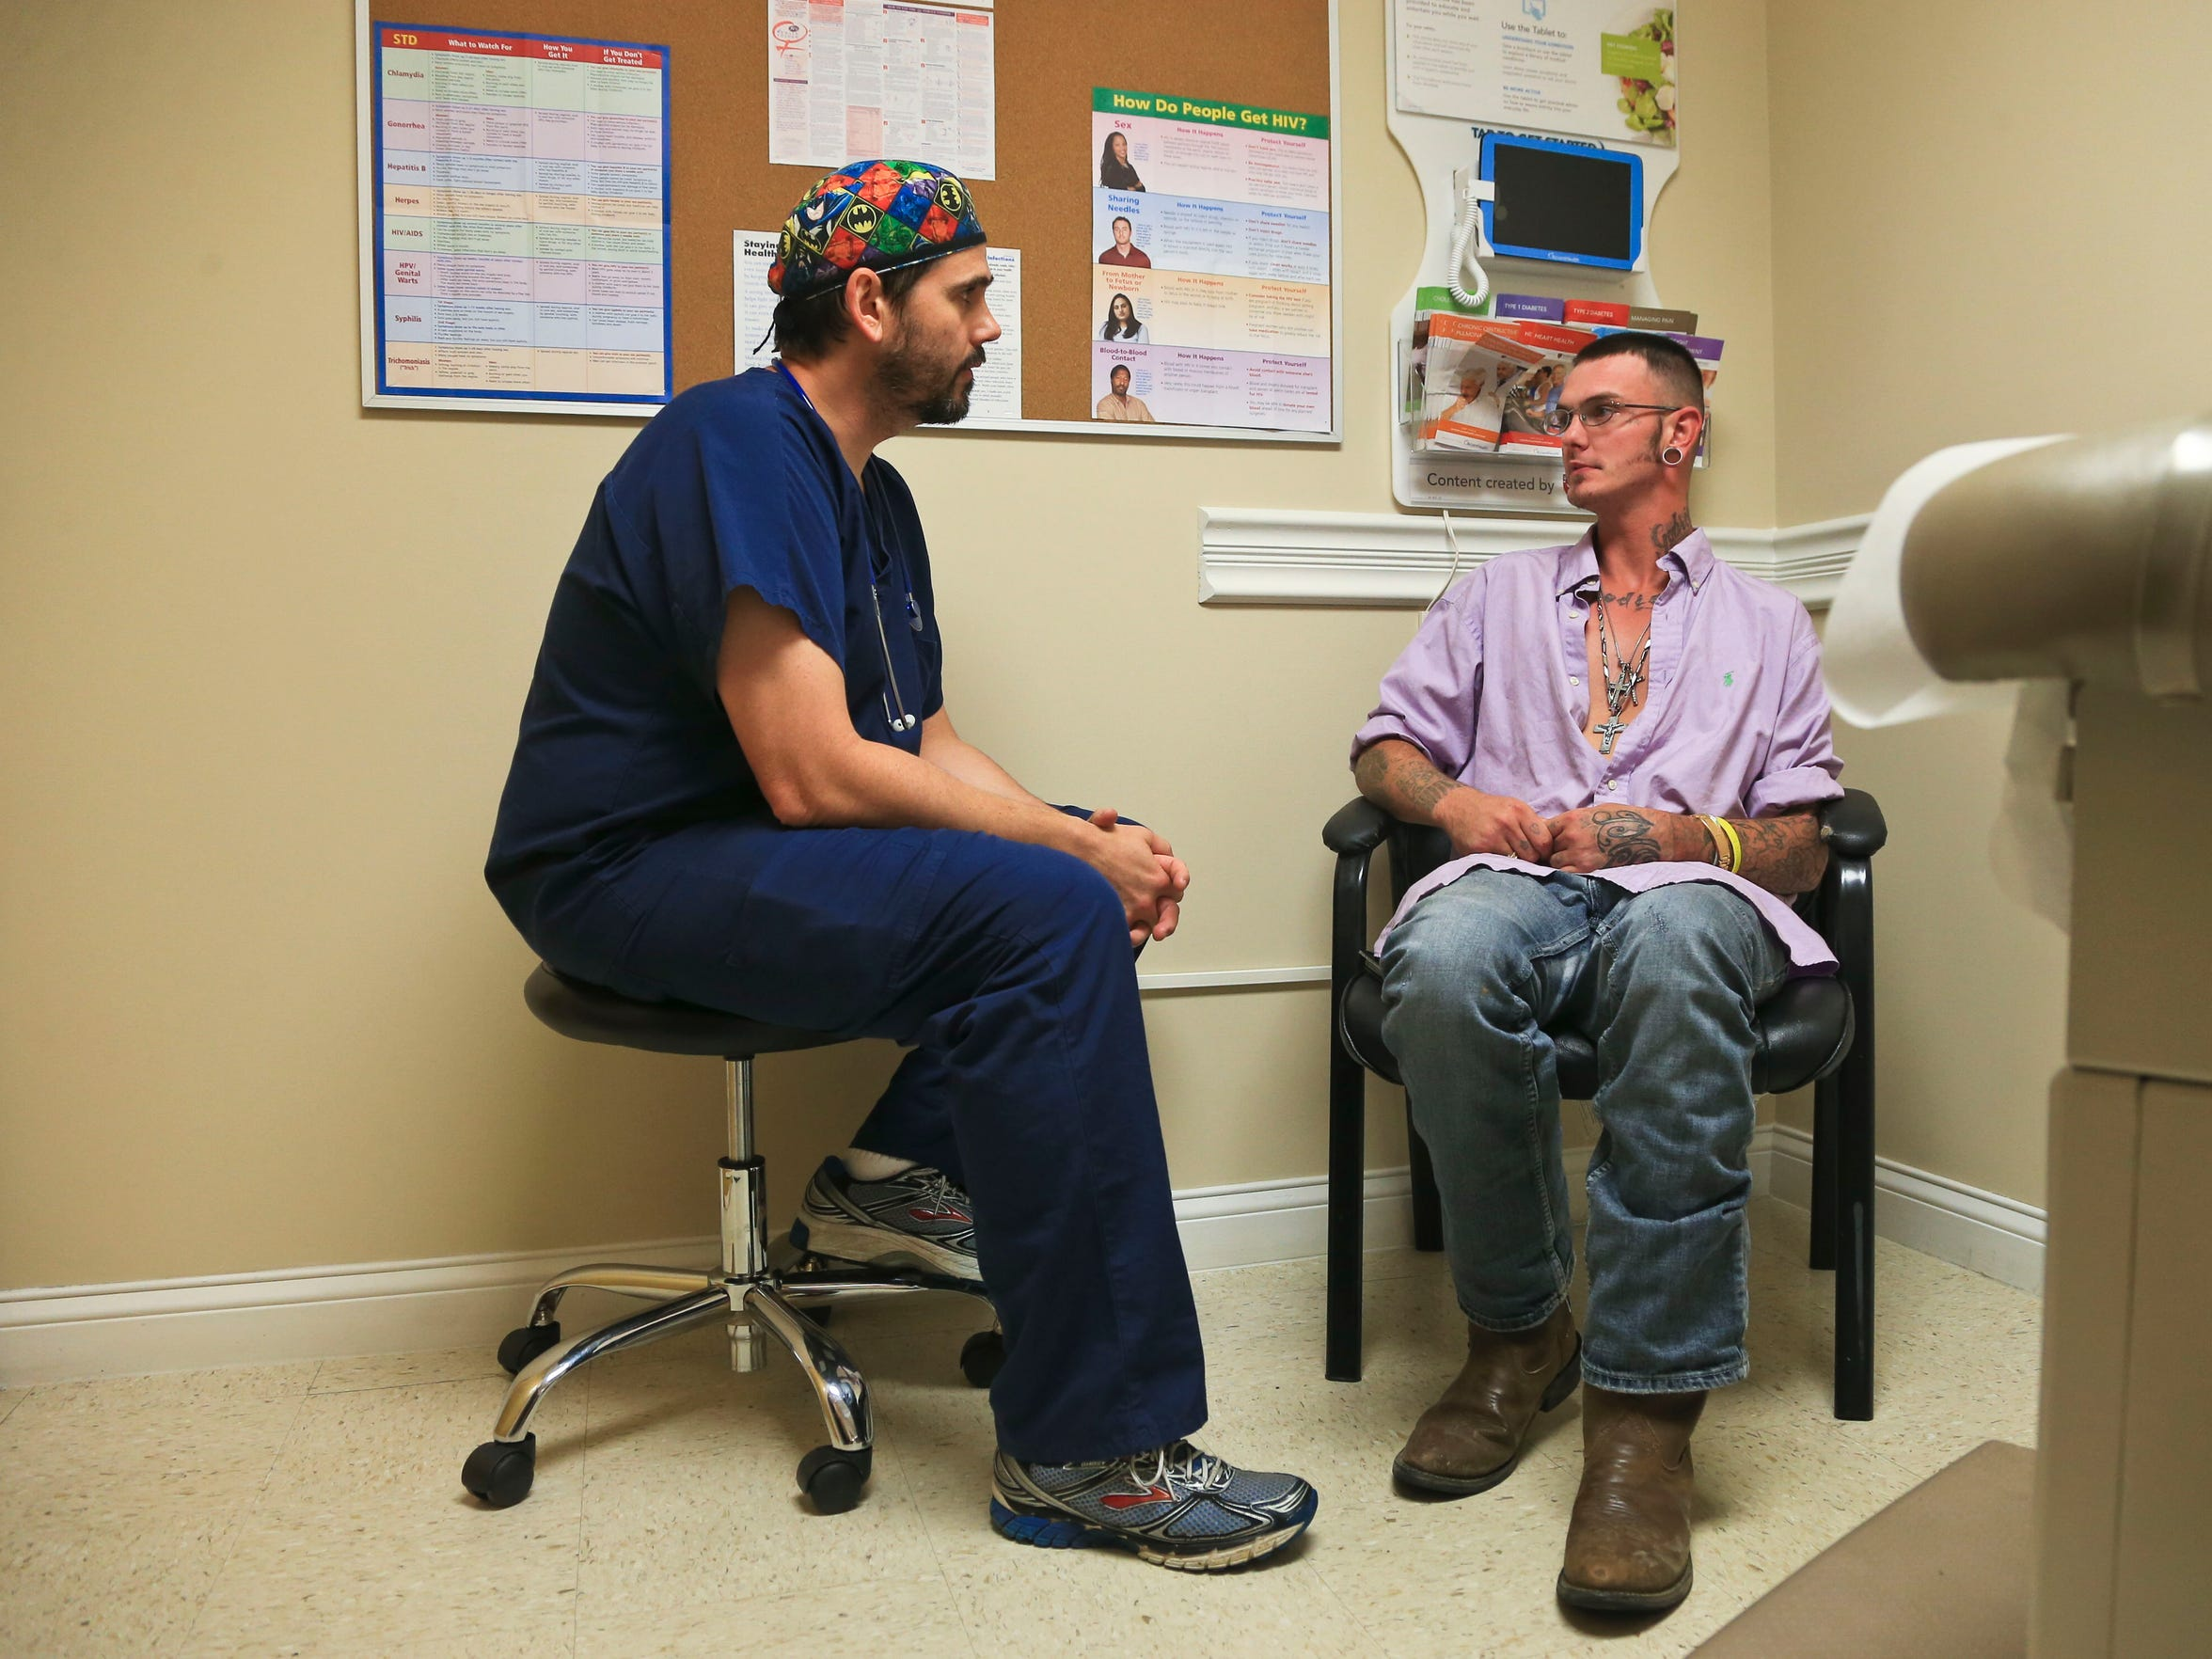 Dr. Will Cooke has been the lone doctor in Austin who